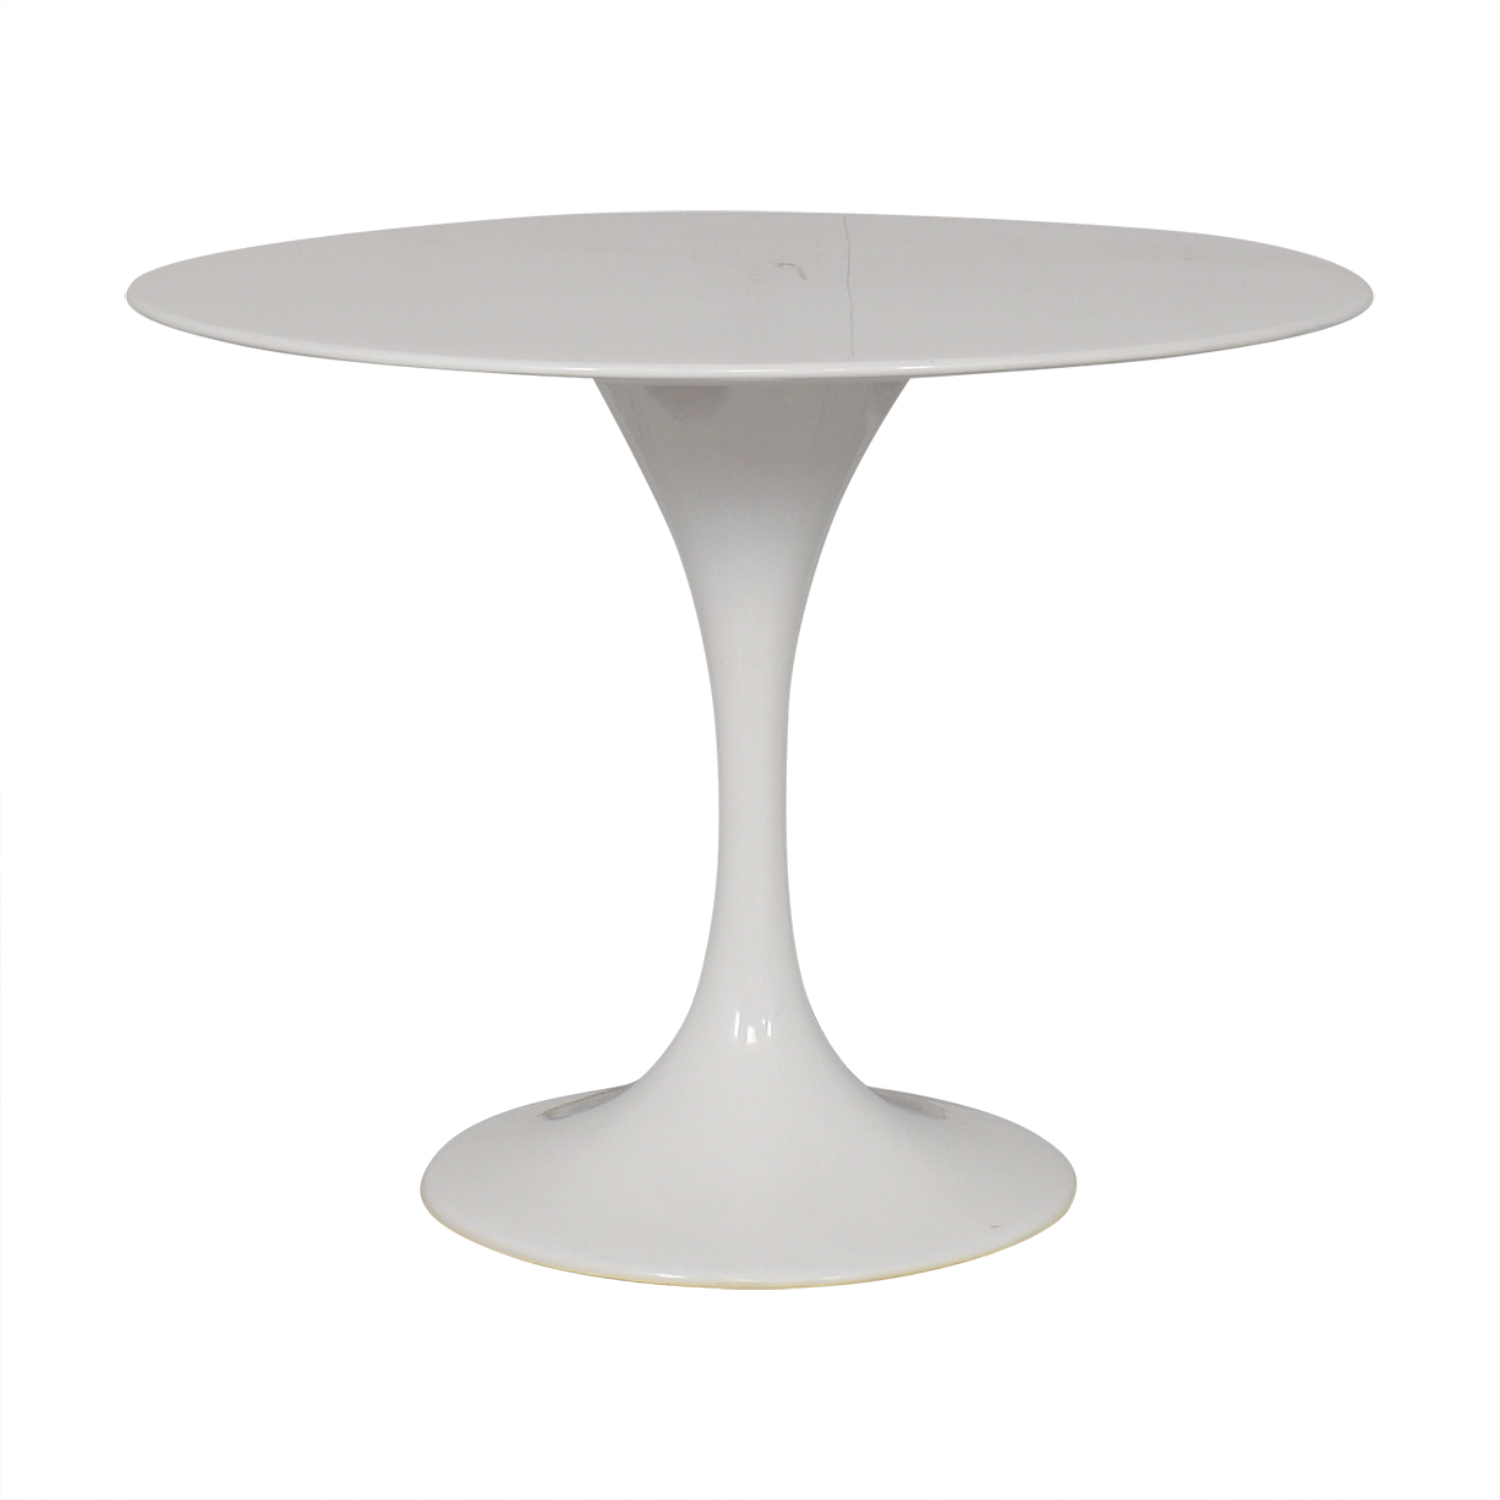 LexMod LexMod Lippa Round Dining Table for sale